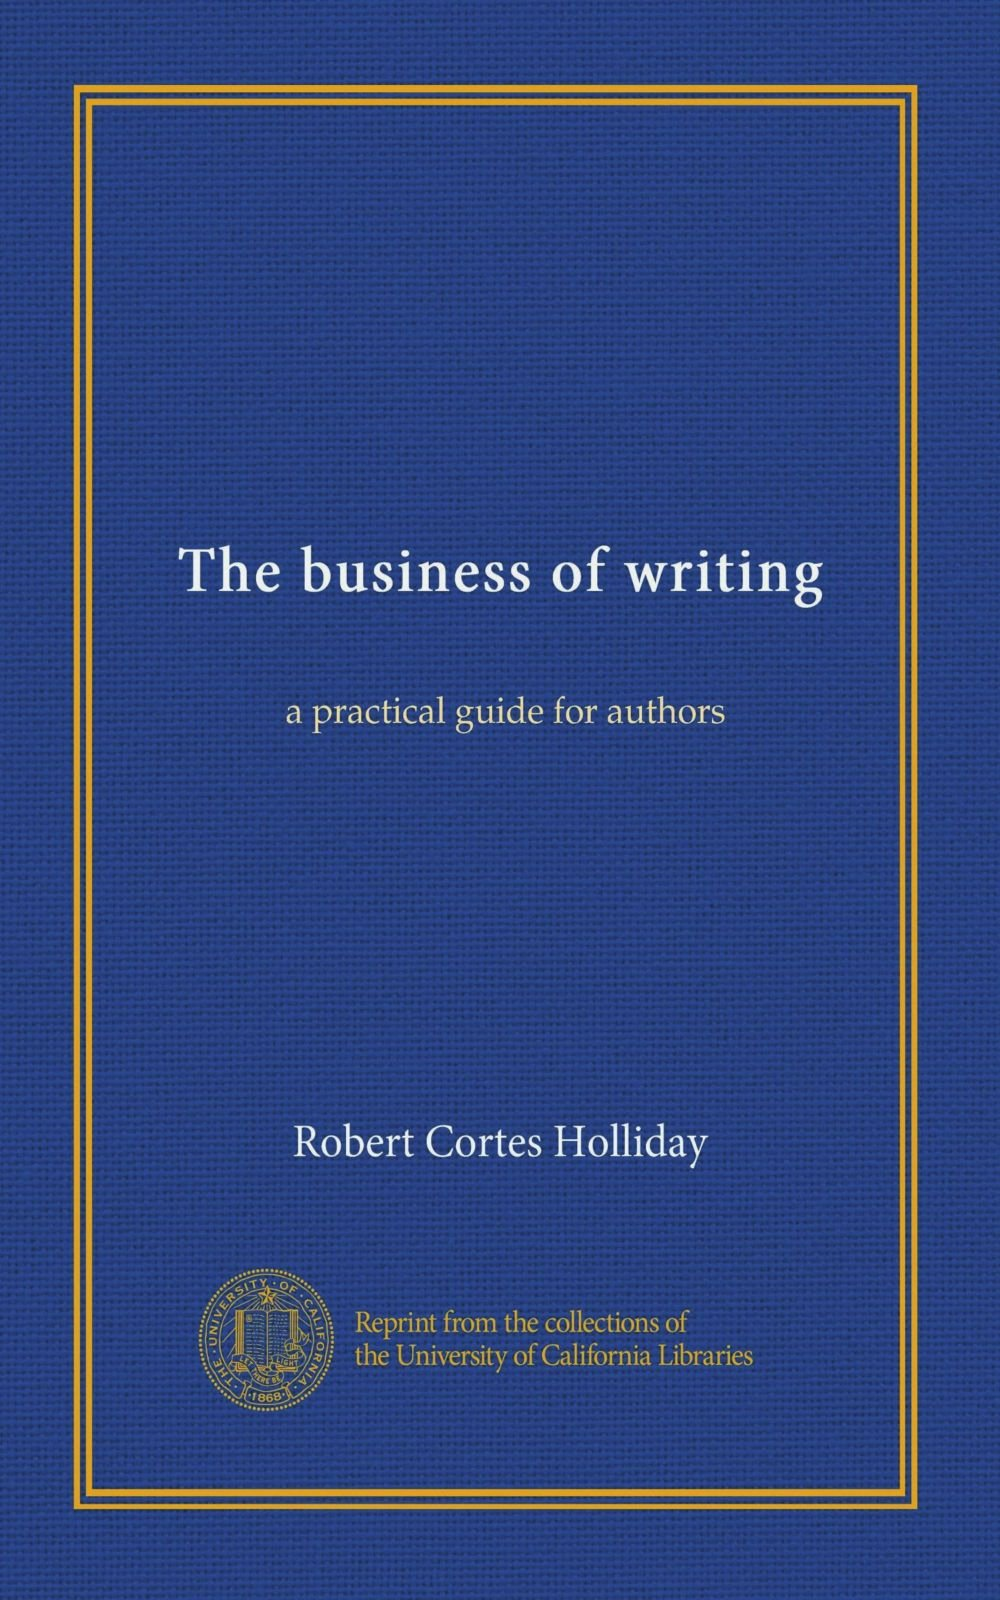 The business of writing: a practical guide for authors PDF